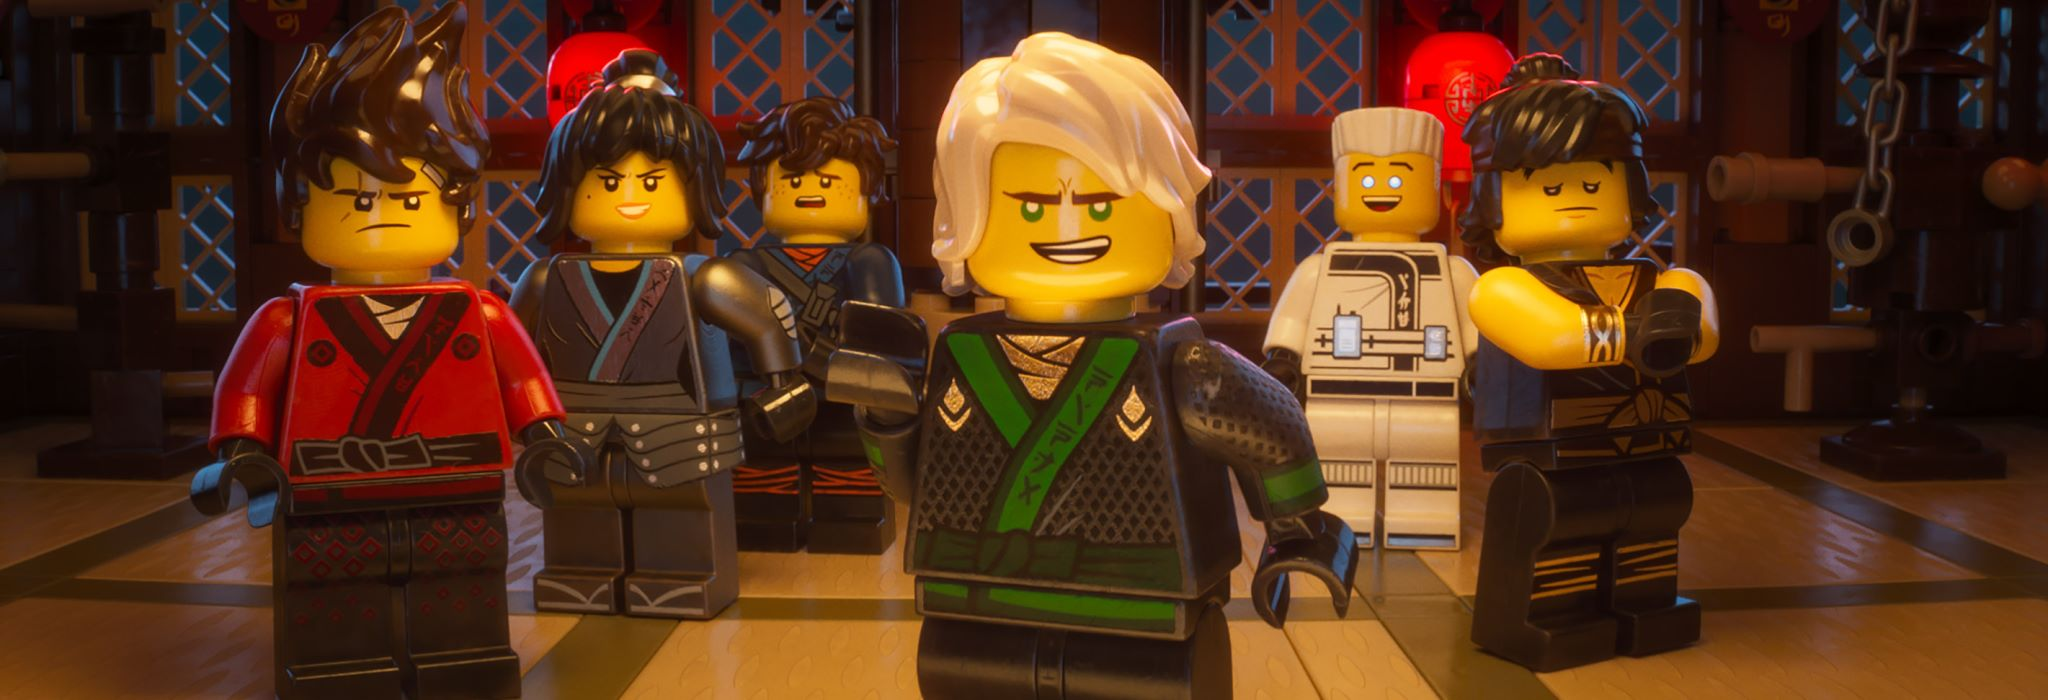 Bild: The Lego Ninjago Movie